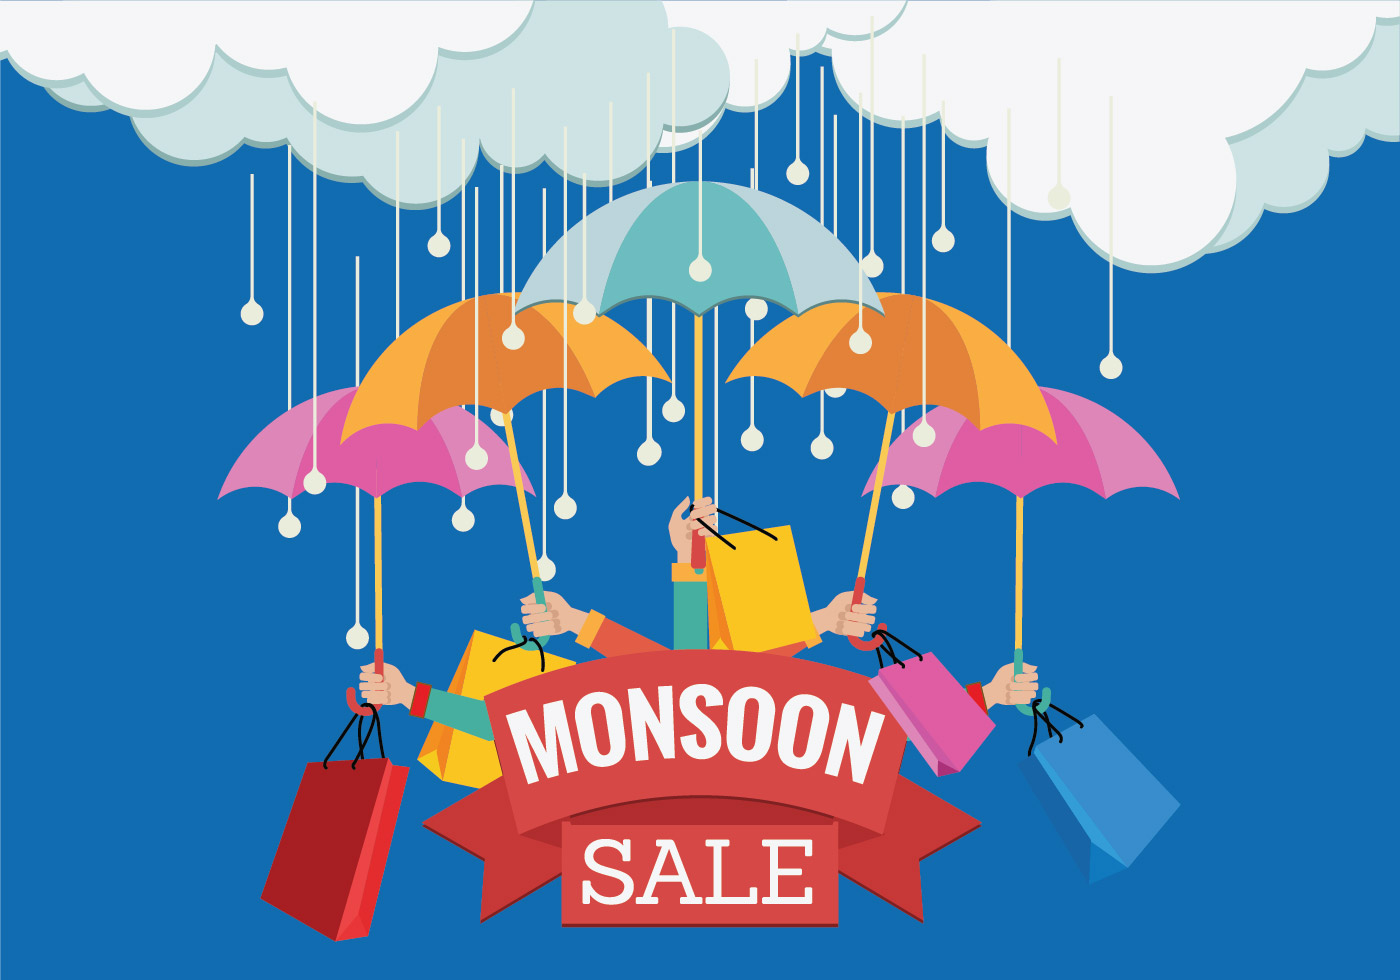 vector sale banner for monsoon season with hands and